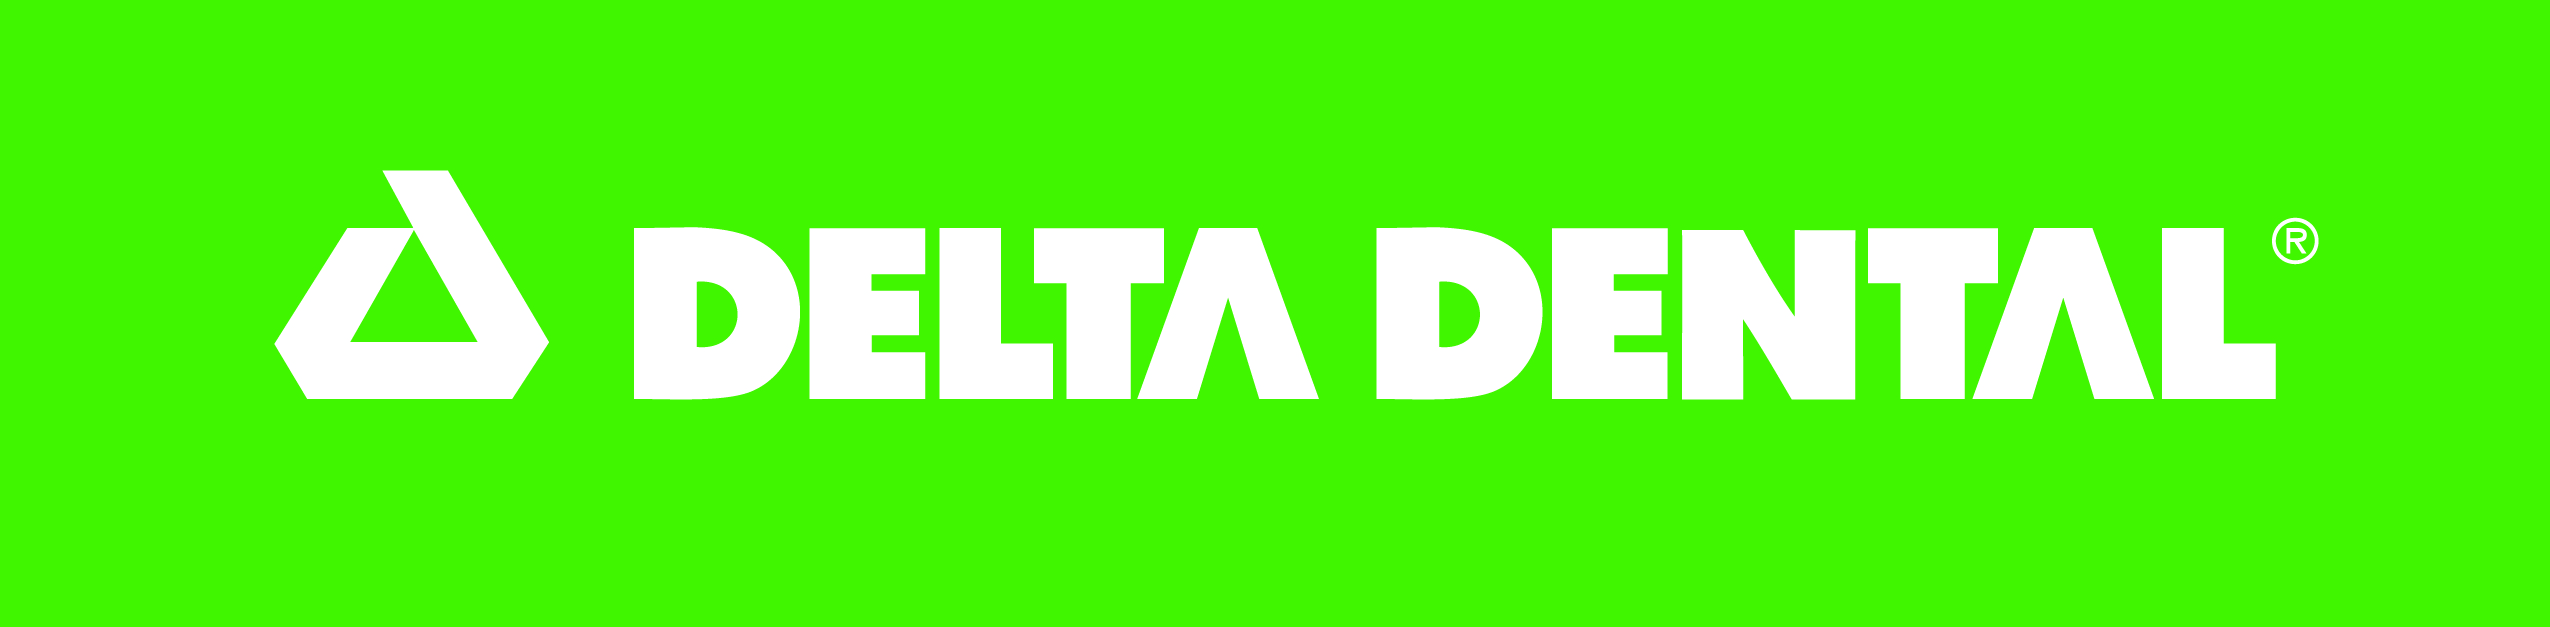 Delta Dental sponsor logo